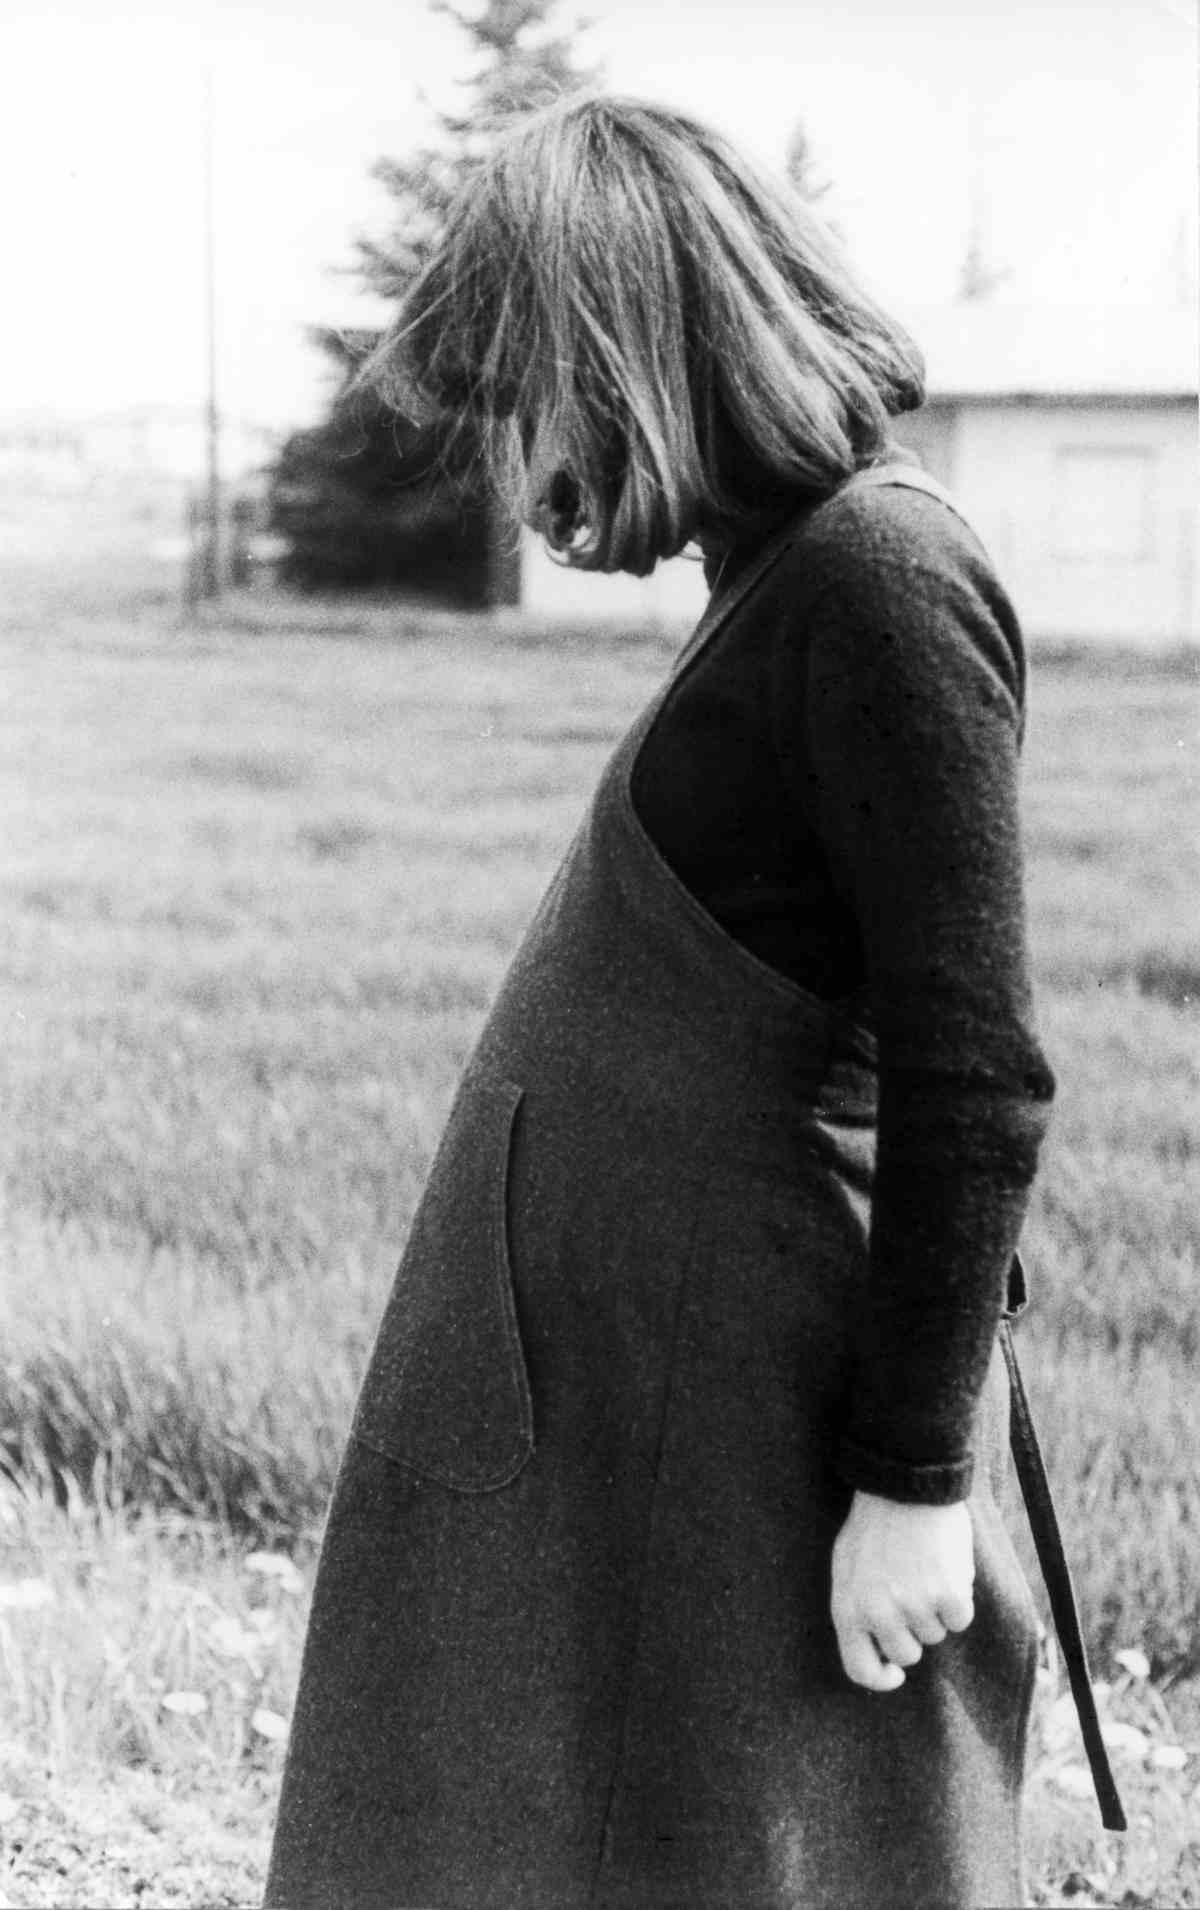 Pregnant woman in her thirties looking down